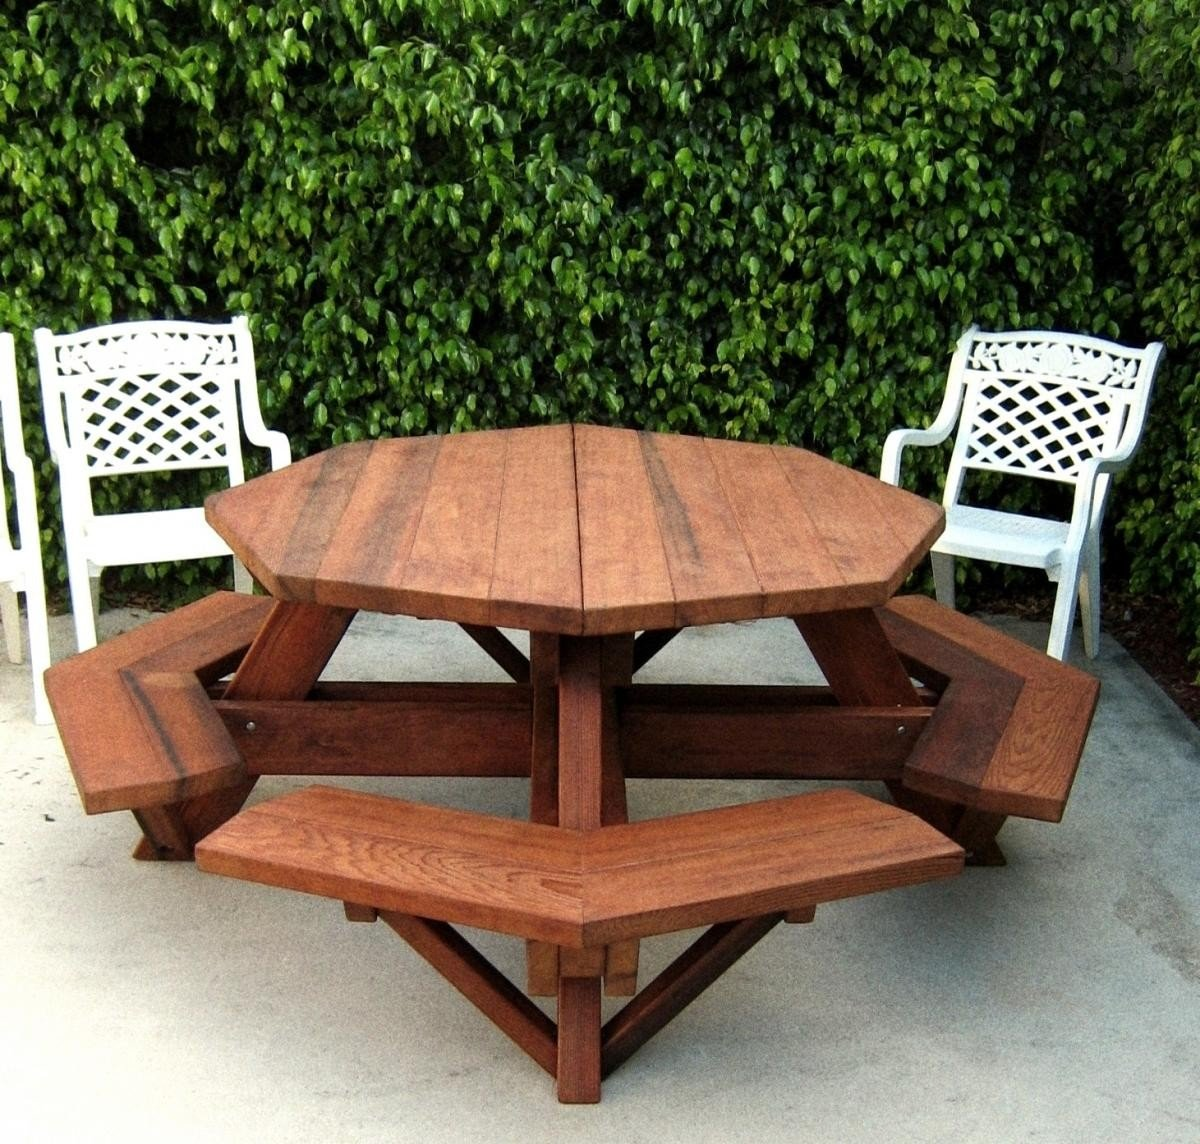 Wood plan get octagonal picnic table plans nz for Octagon coffee table plans